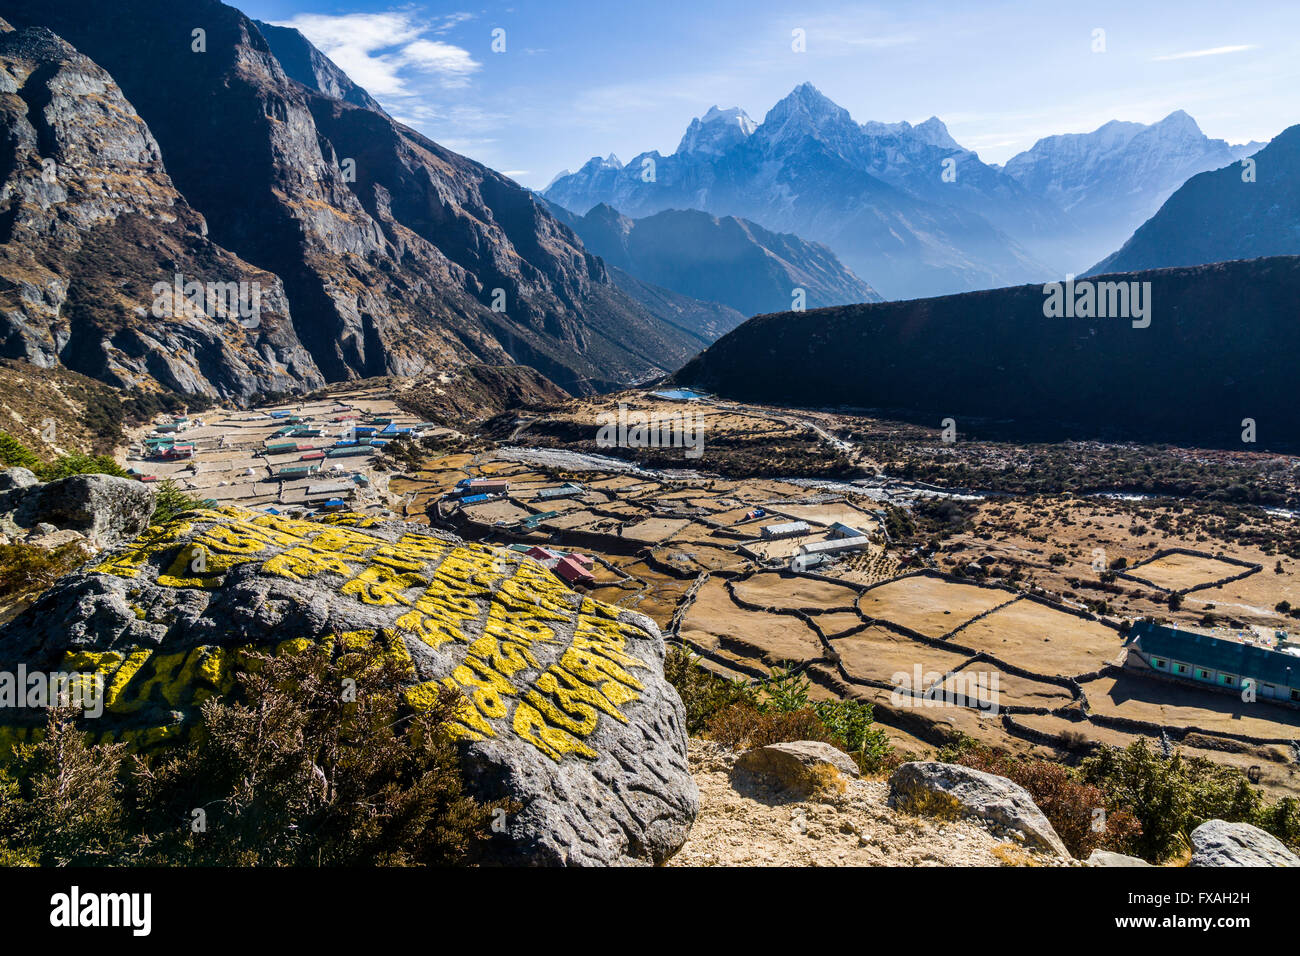 View of the agricultural village of Thame, snow covered mountains in the distance, Thame, Solo Khumbu, Nepal - Stock Image